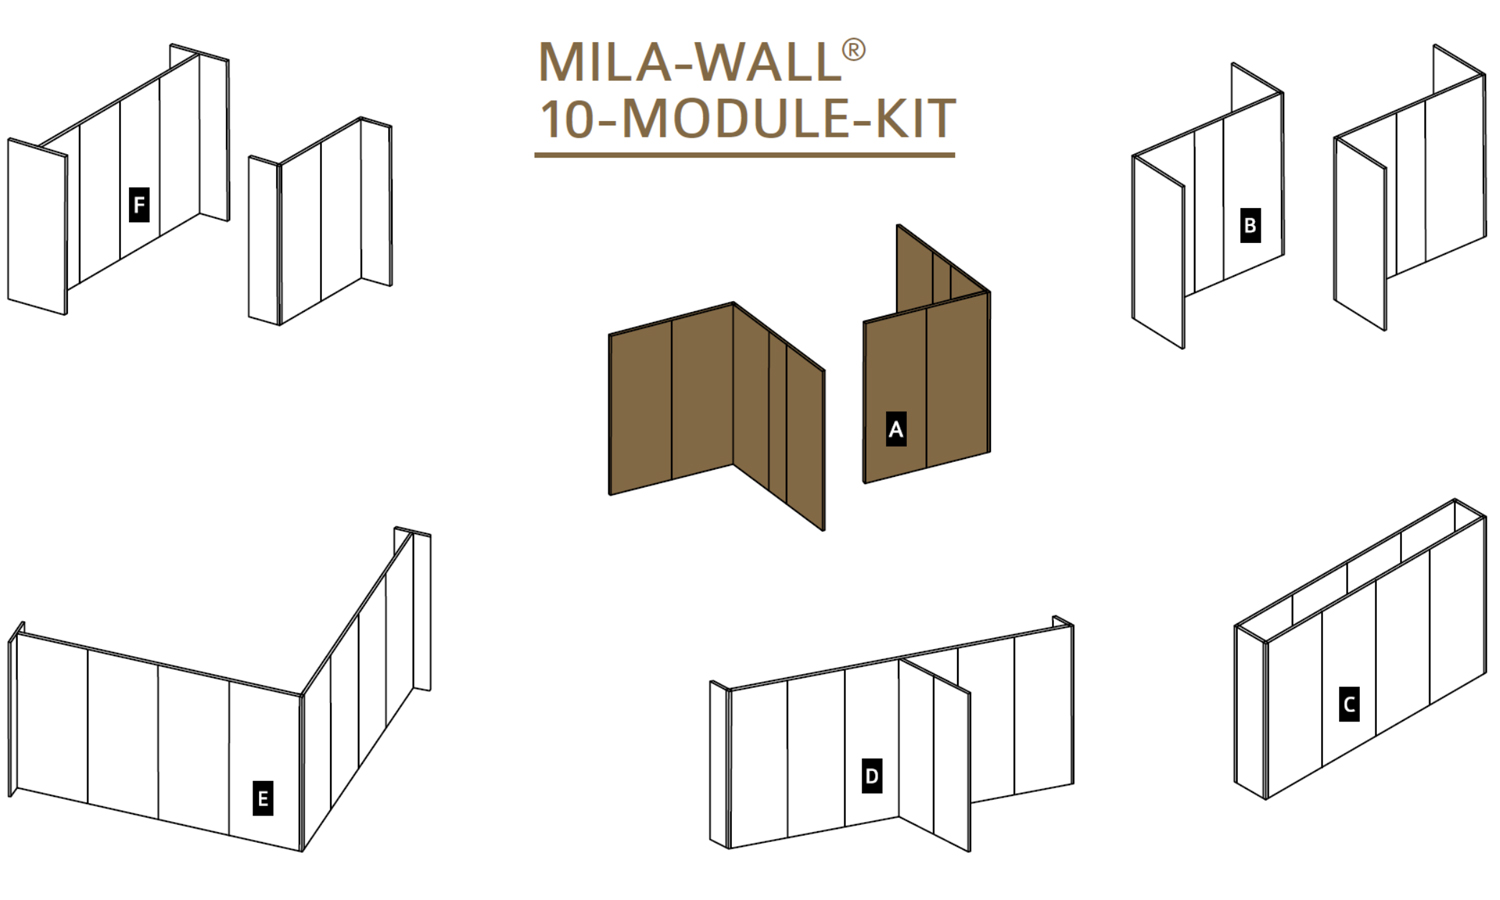 Skizze MBA Mila-wall Kit 10